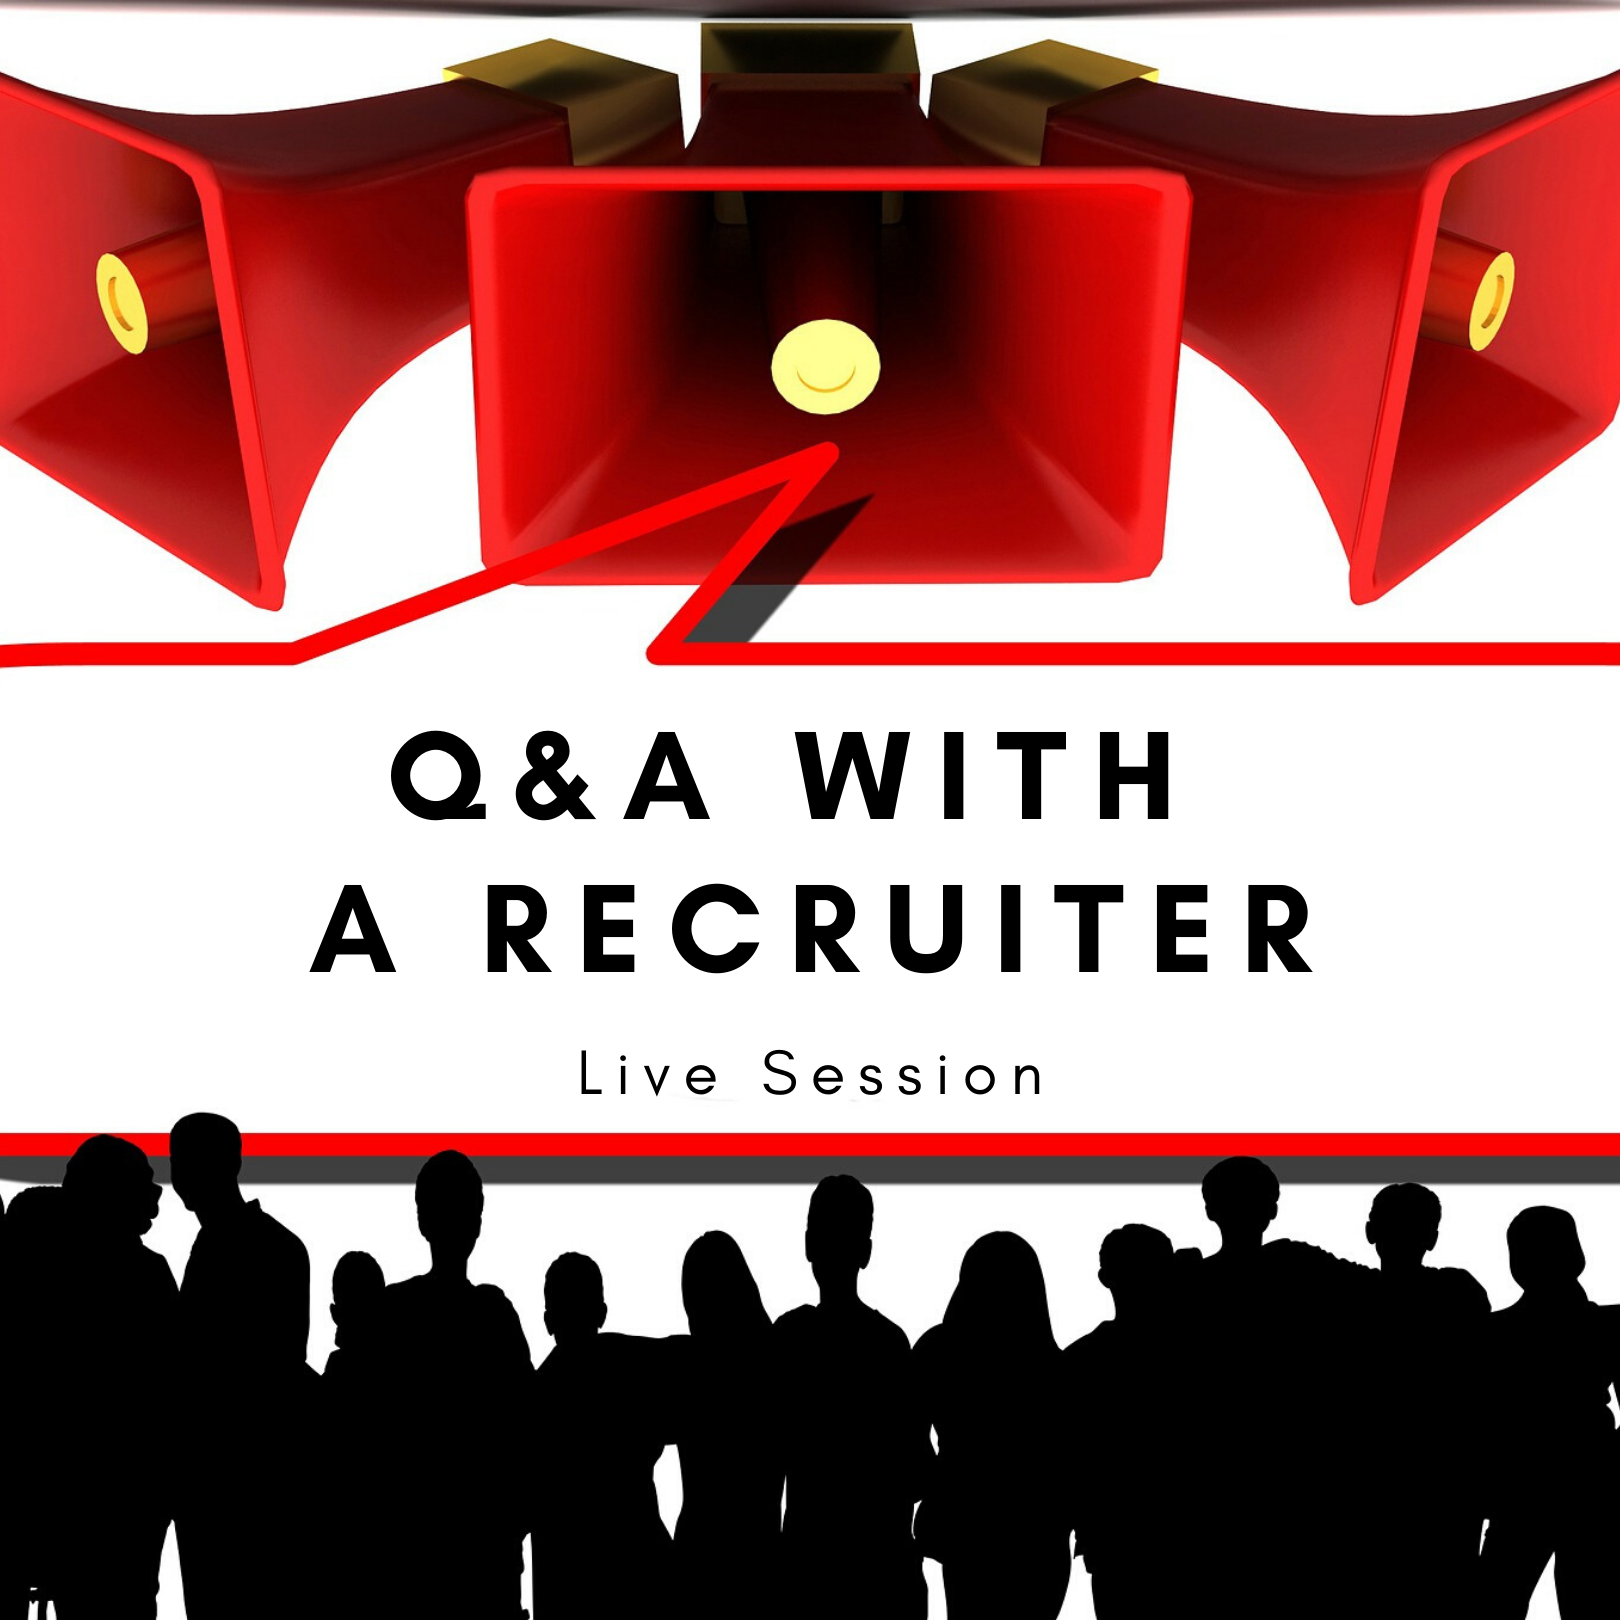 Live Q&A Session [with a recruiter]